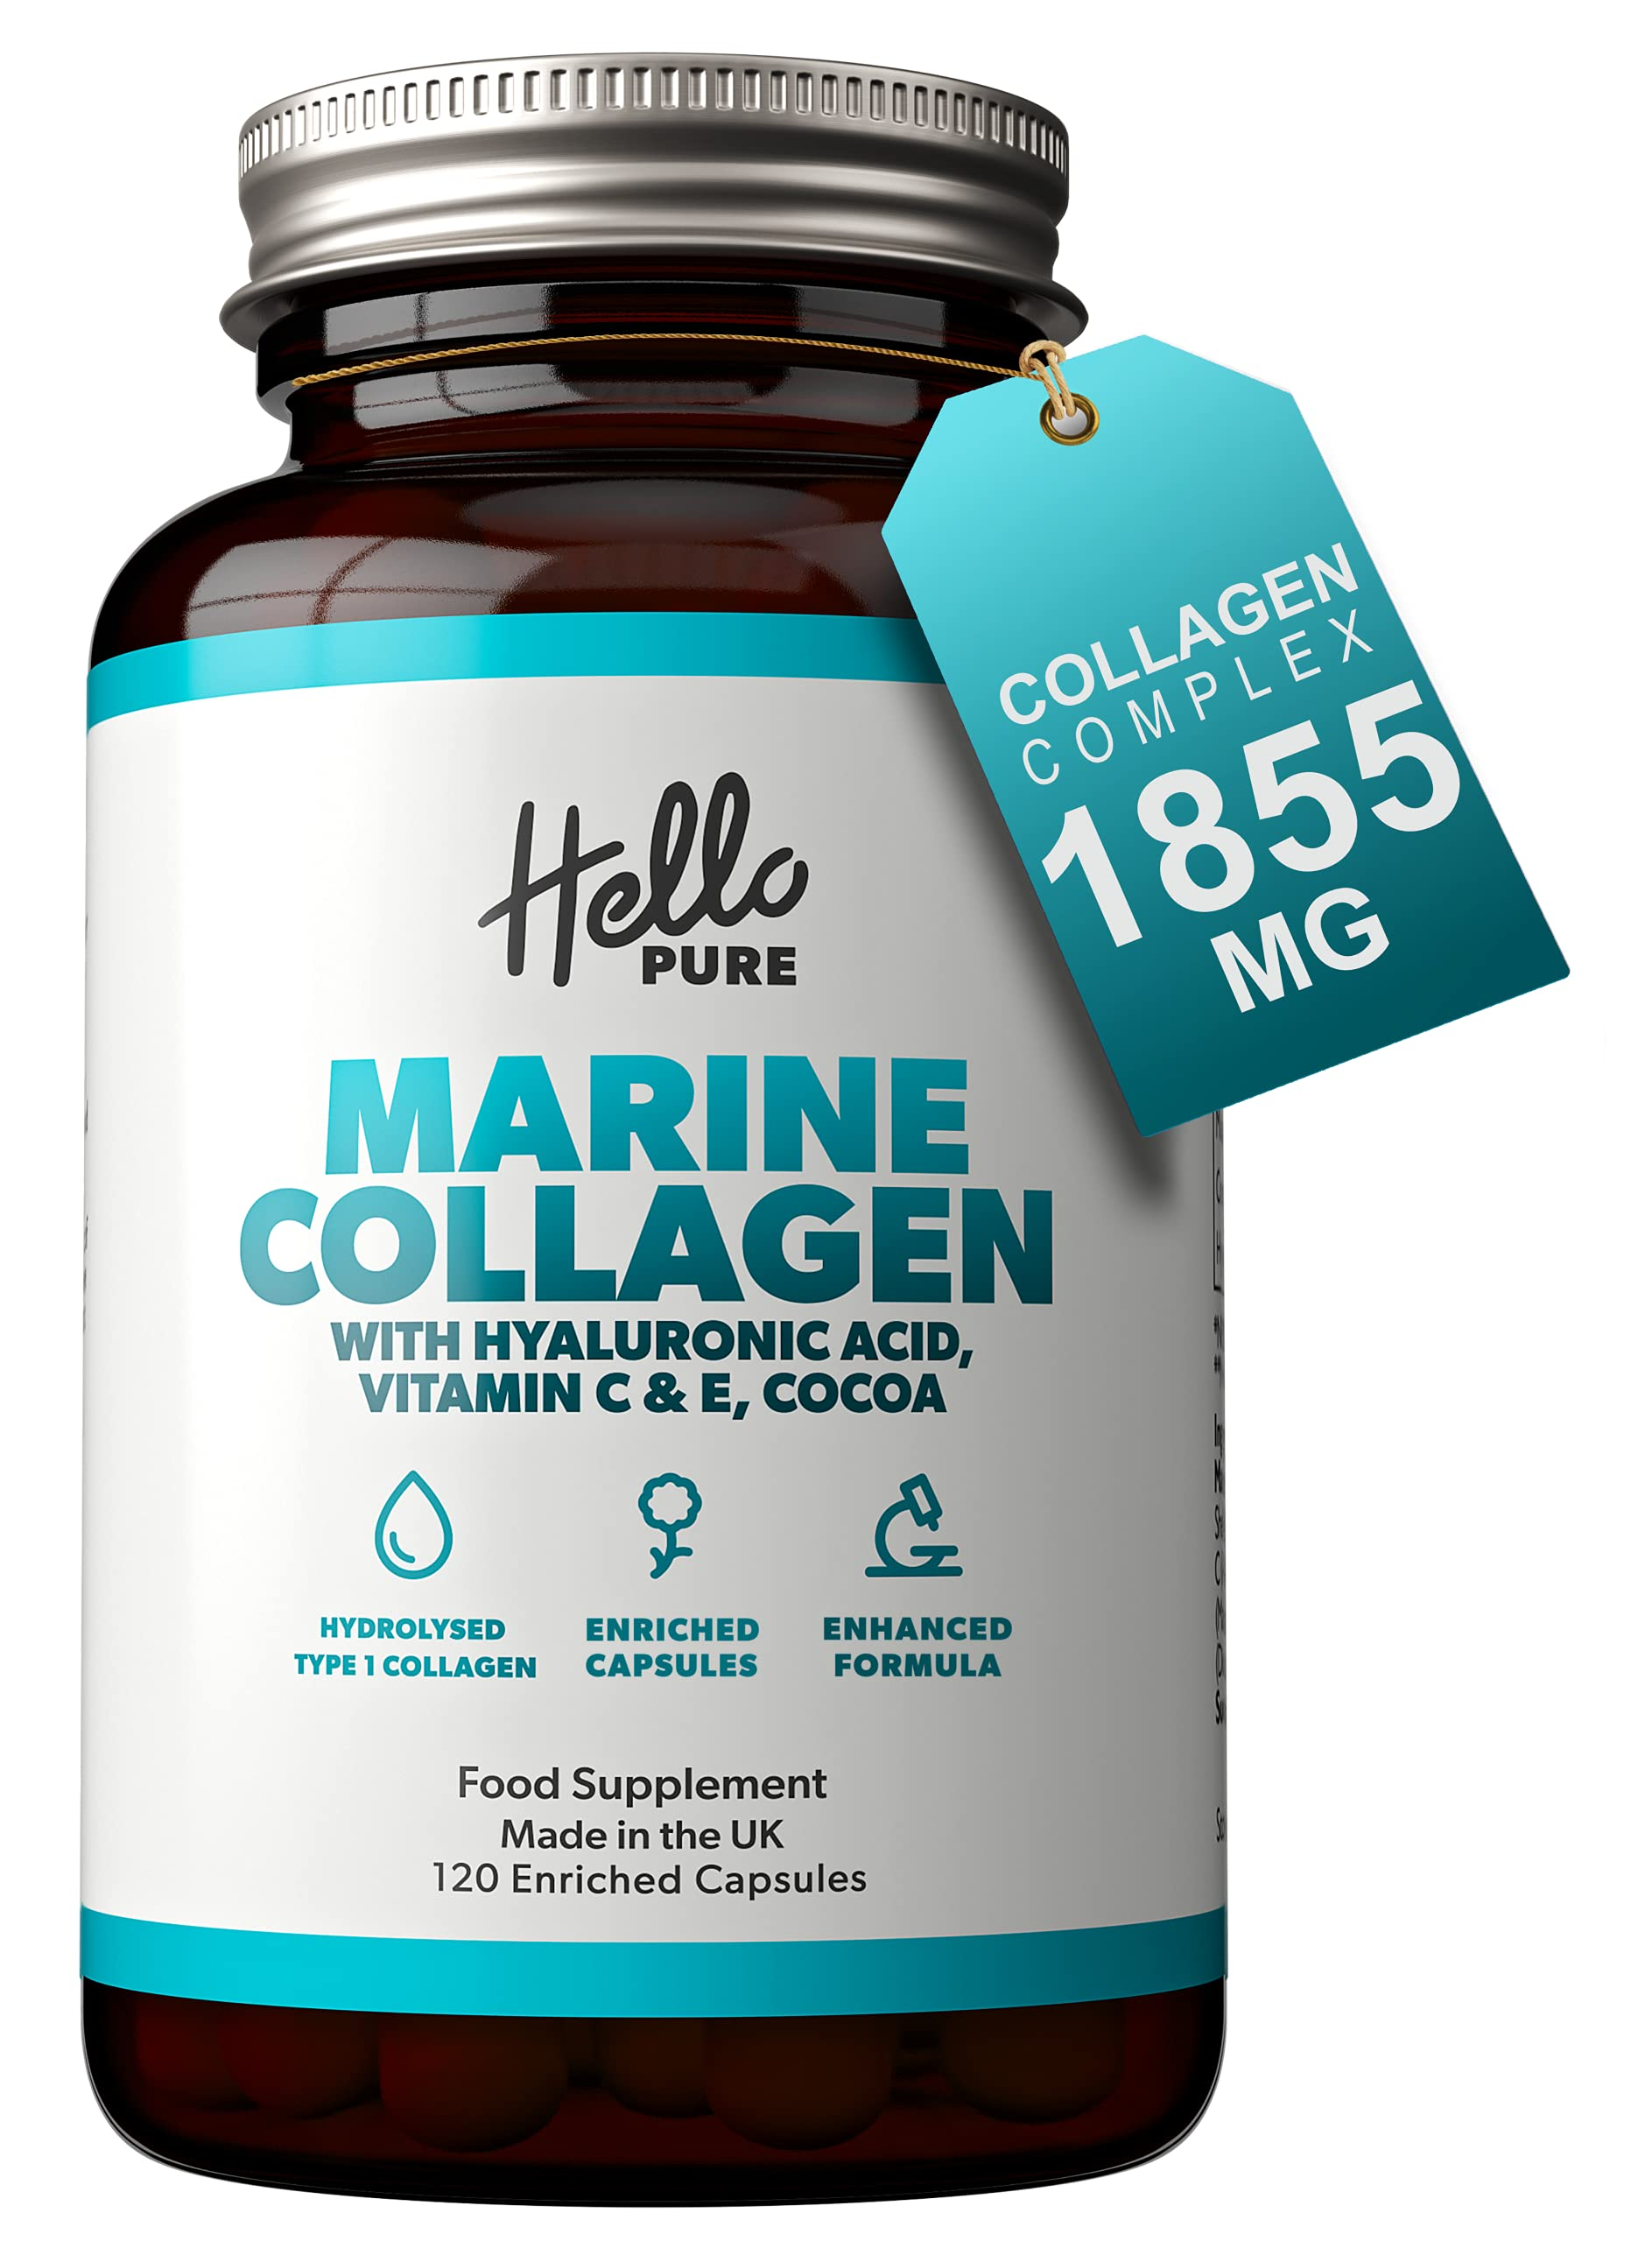 Ultra Potent Radiance Marine Collagen Supplement Complex 1855mg with Hyaluronic Acid & Vitamins C & E – Hydrolysed Collagen Capsules Not Collagen Tablets – Healthy Skin, Immune System & Joints